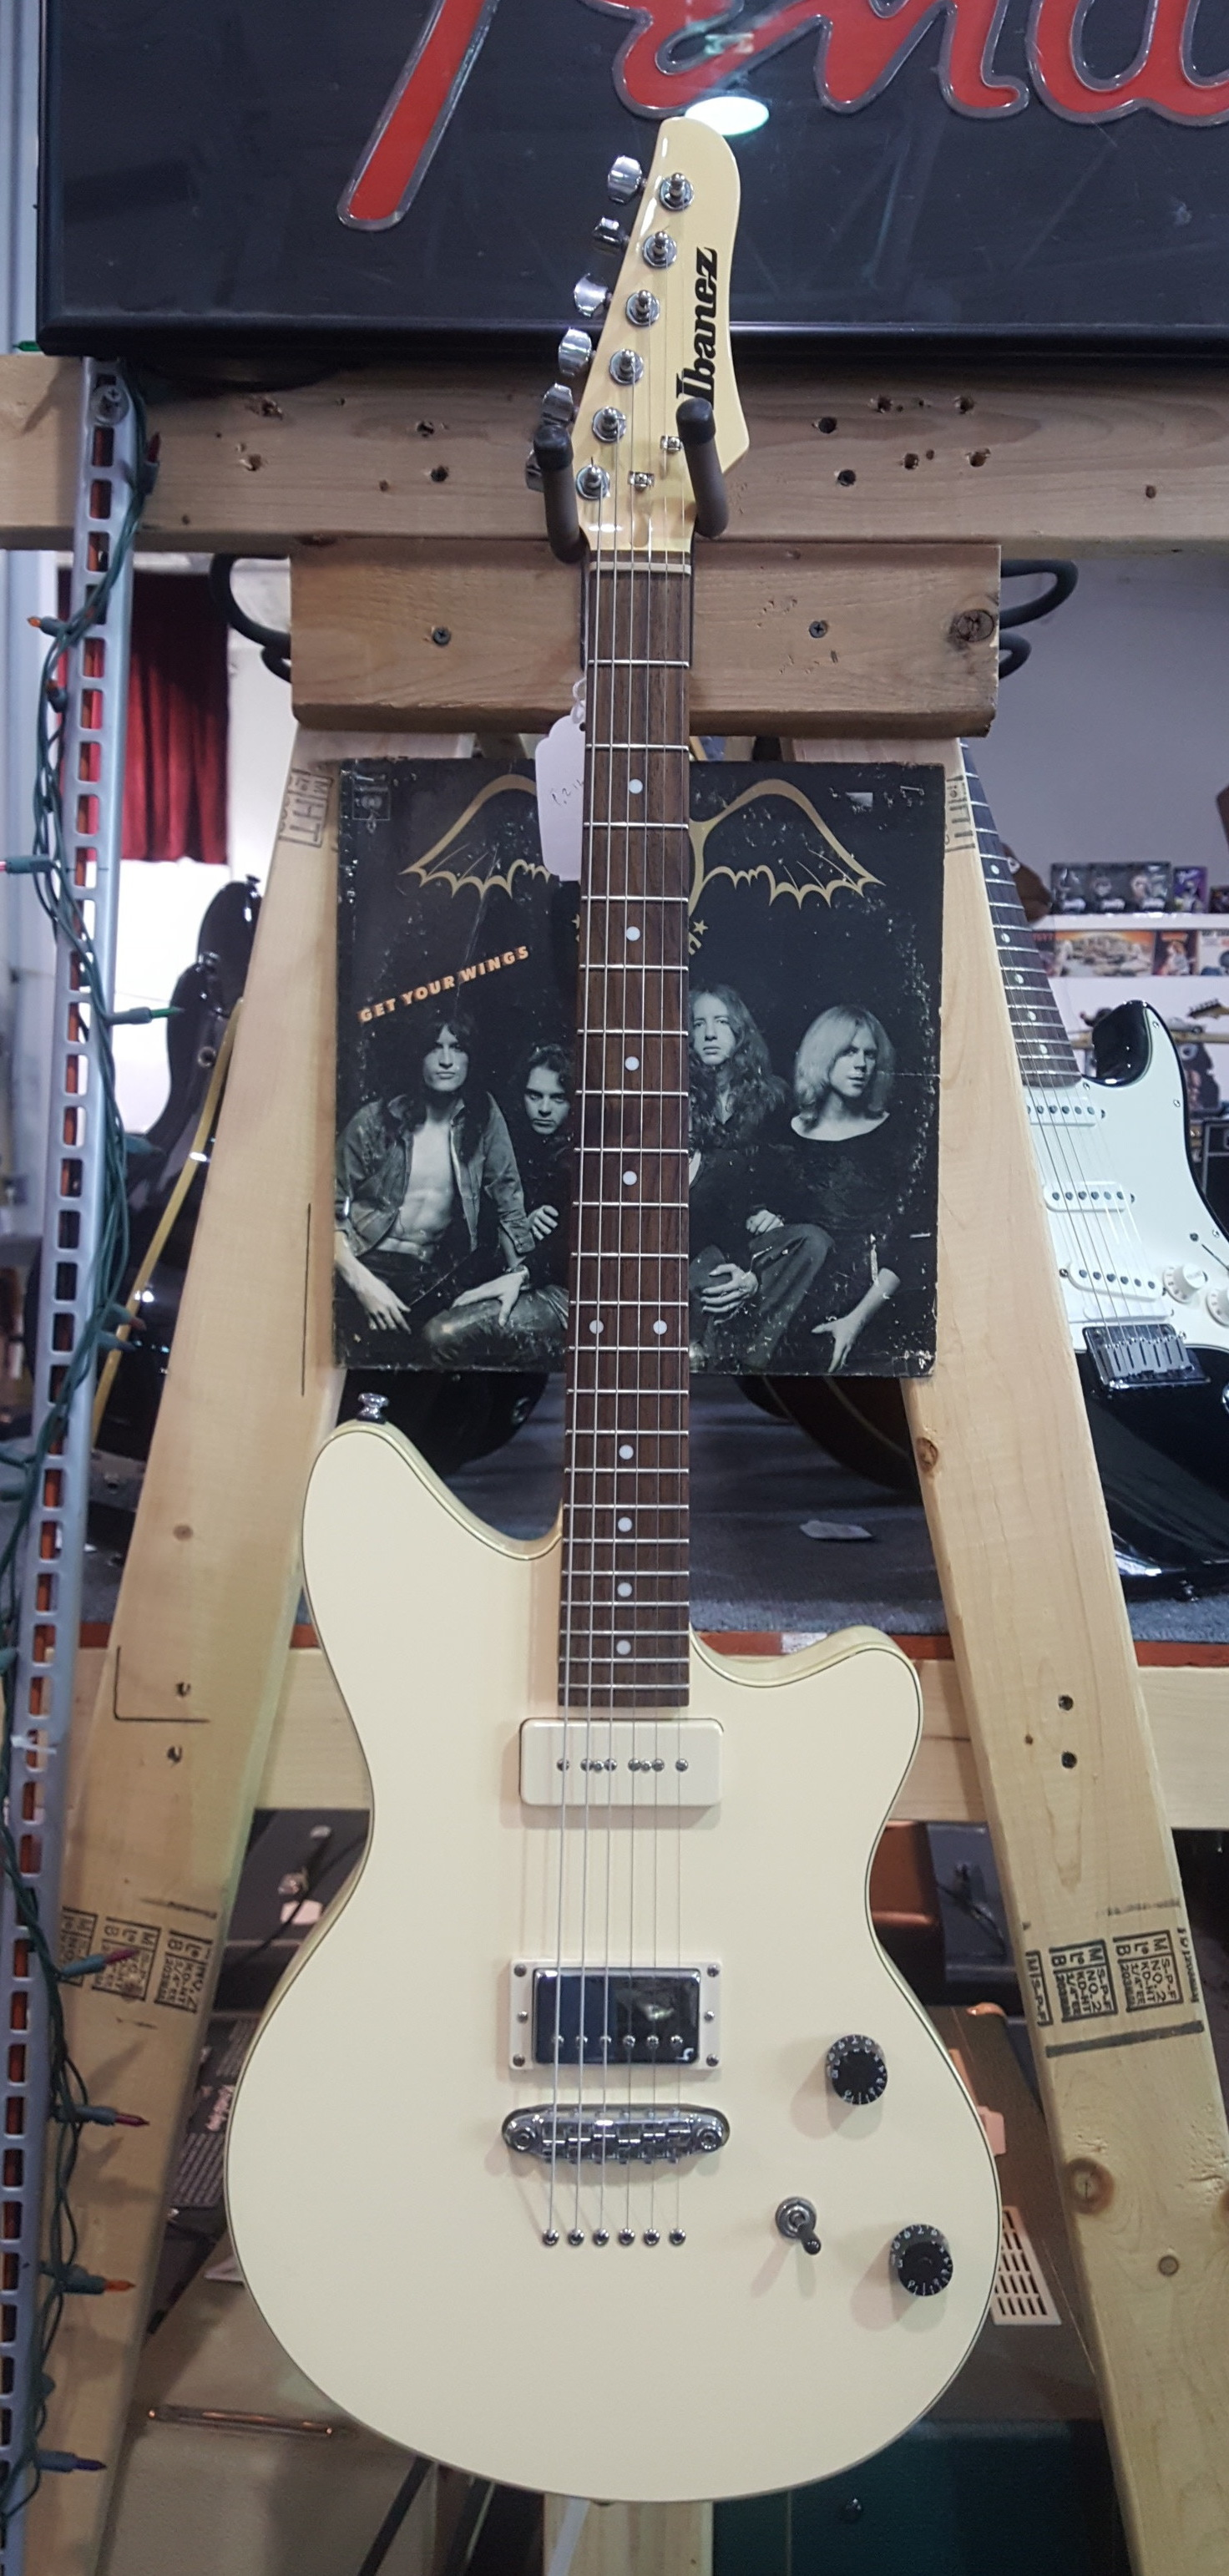 IBANEZ CMM1 Chris Miller Signature Electric Guitar - CREAM / IVORY with Gig-bag!